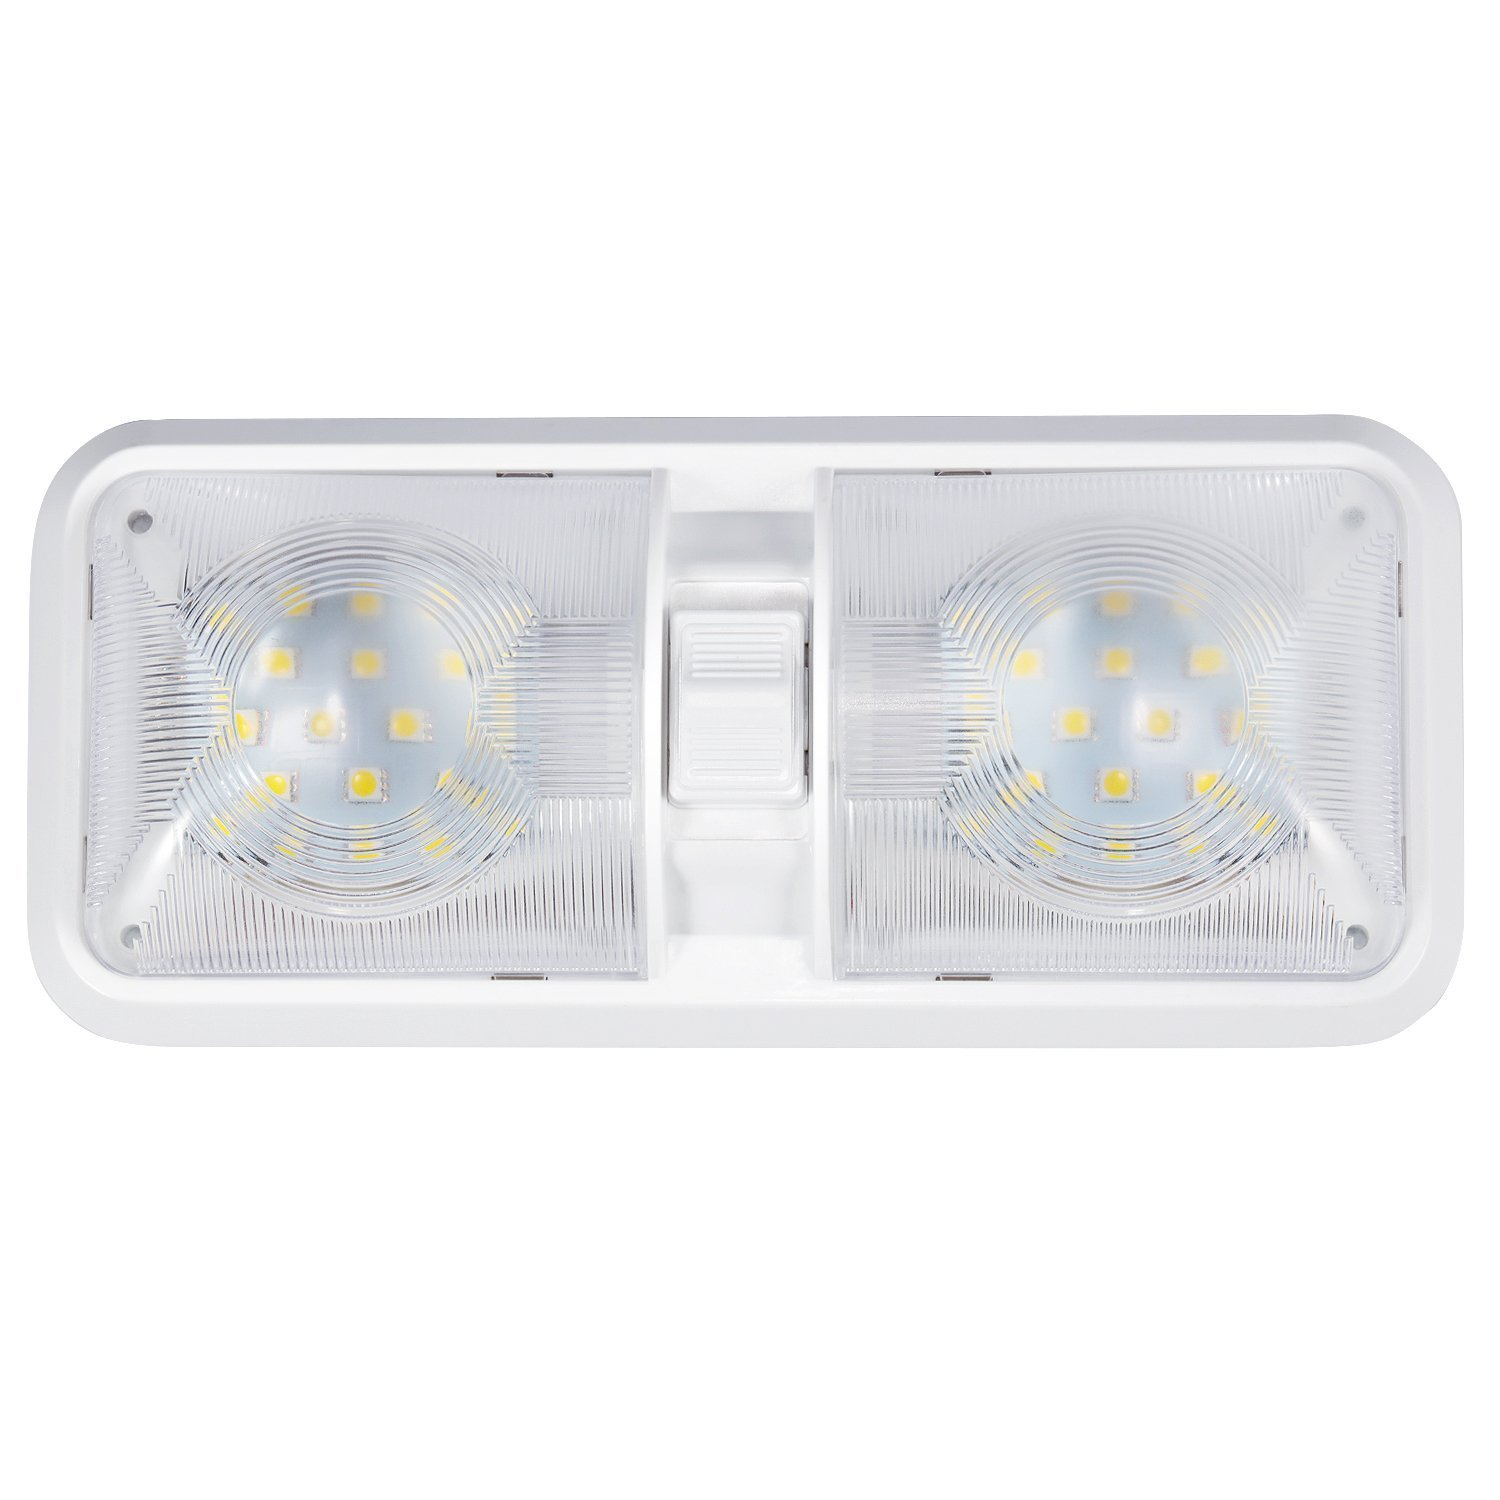 Kohree 12v Led Rv Ceiling Dome Light Rv Interior Lighting For Trailer Camper With Switch White